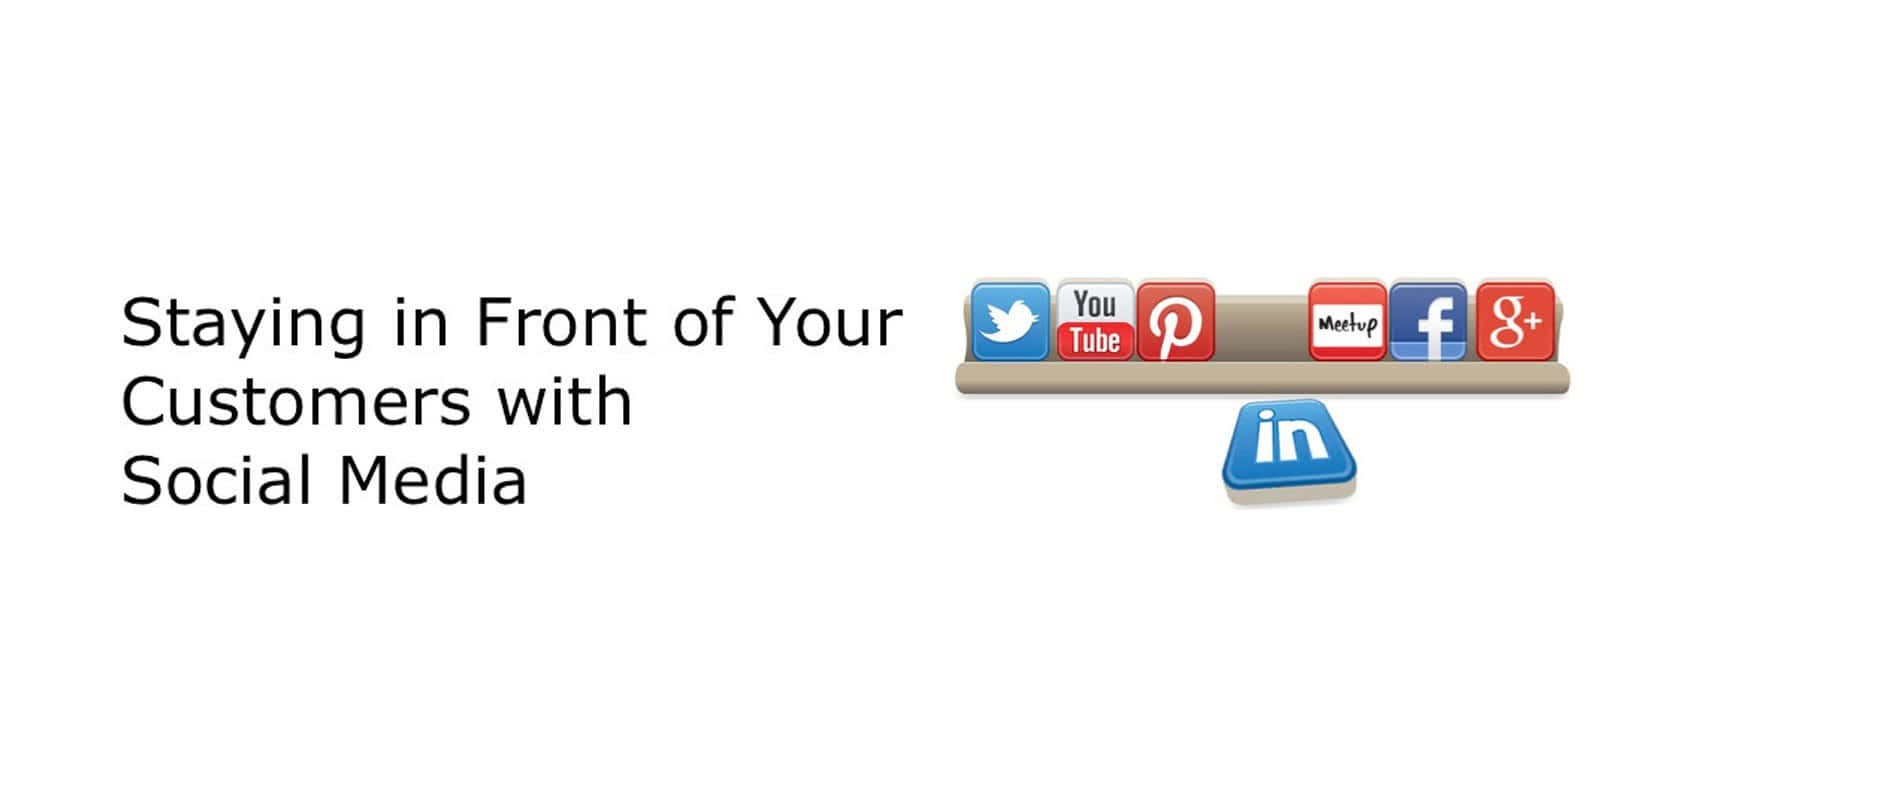 CEU|Staying in Front of Your Customers with Social Media